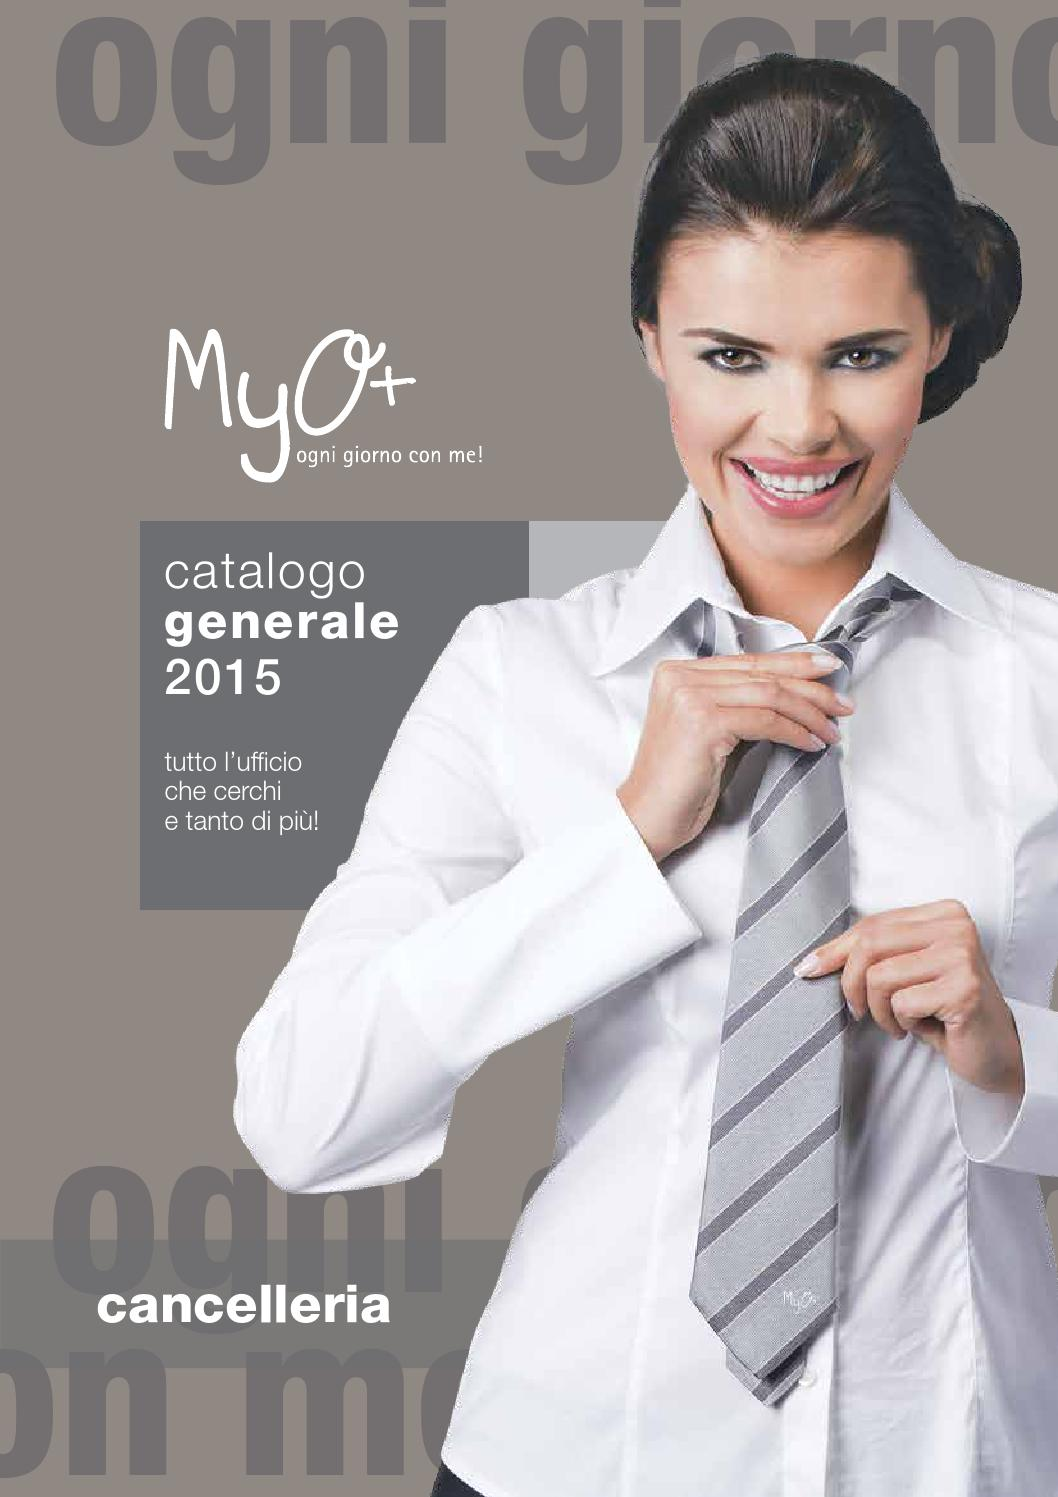 Catalogo Cancelleria Catalogo Myo Gt Cancelleria By Myo S P A Issuu